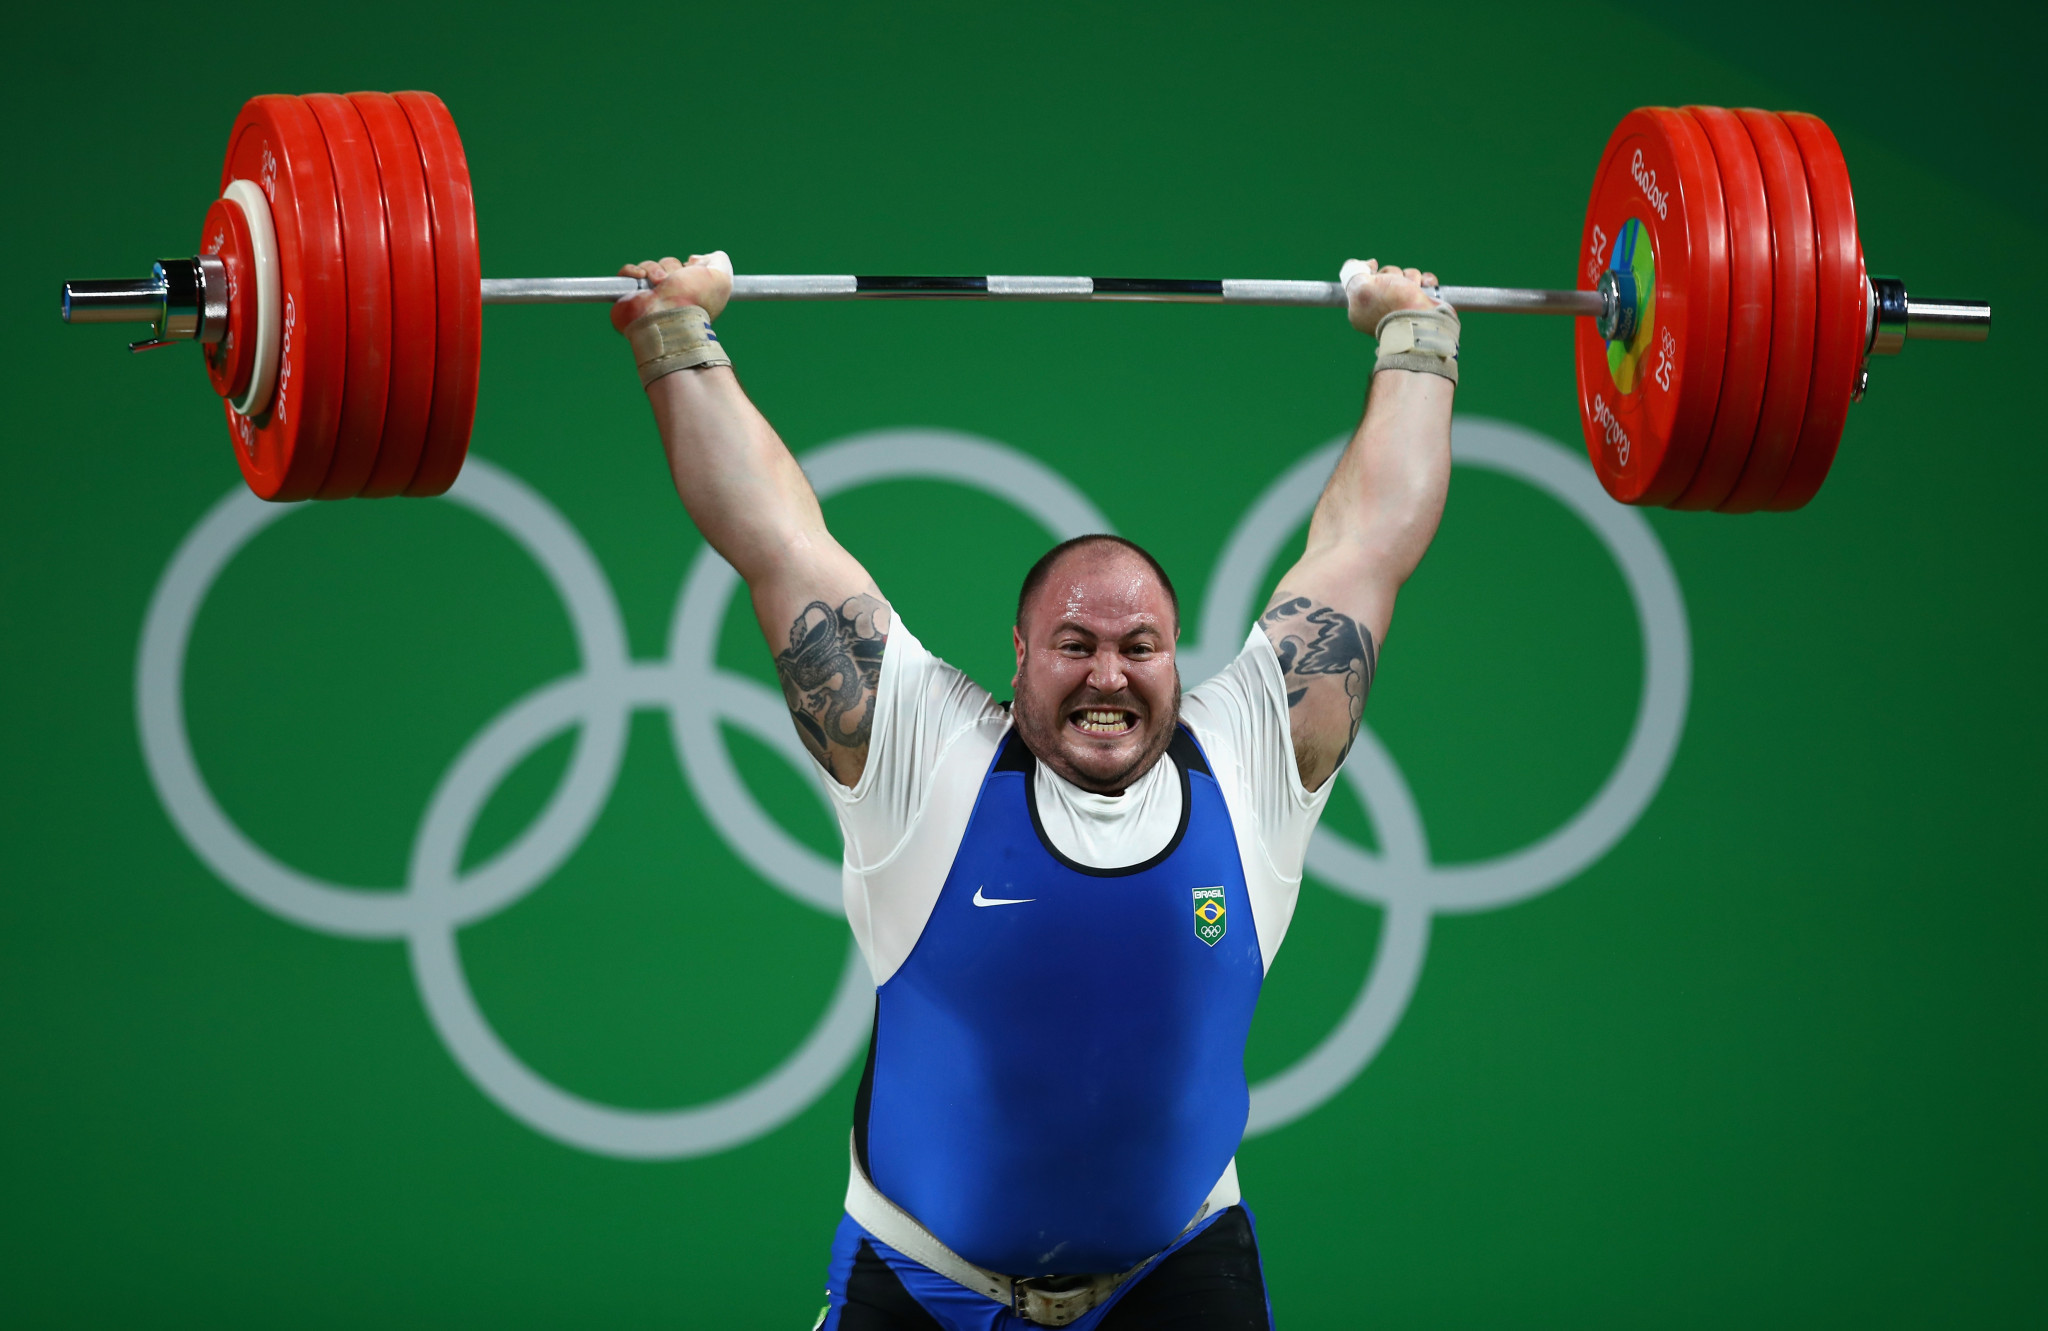 Fernando Reis won the men's super heavyweight category at the Pan American Championships in Santo Domingo ©Getty Images